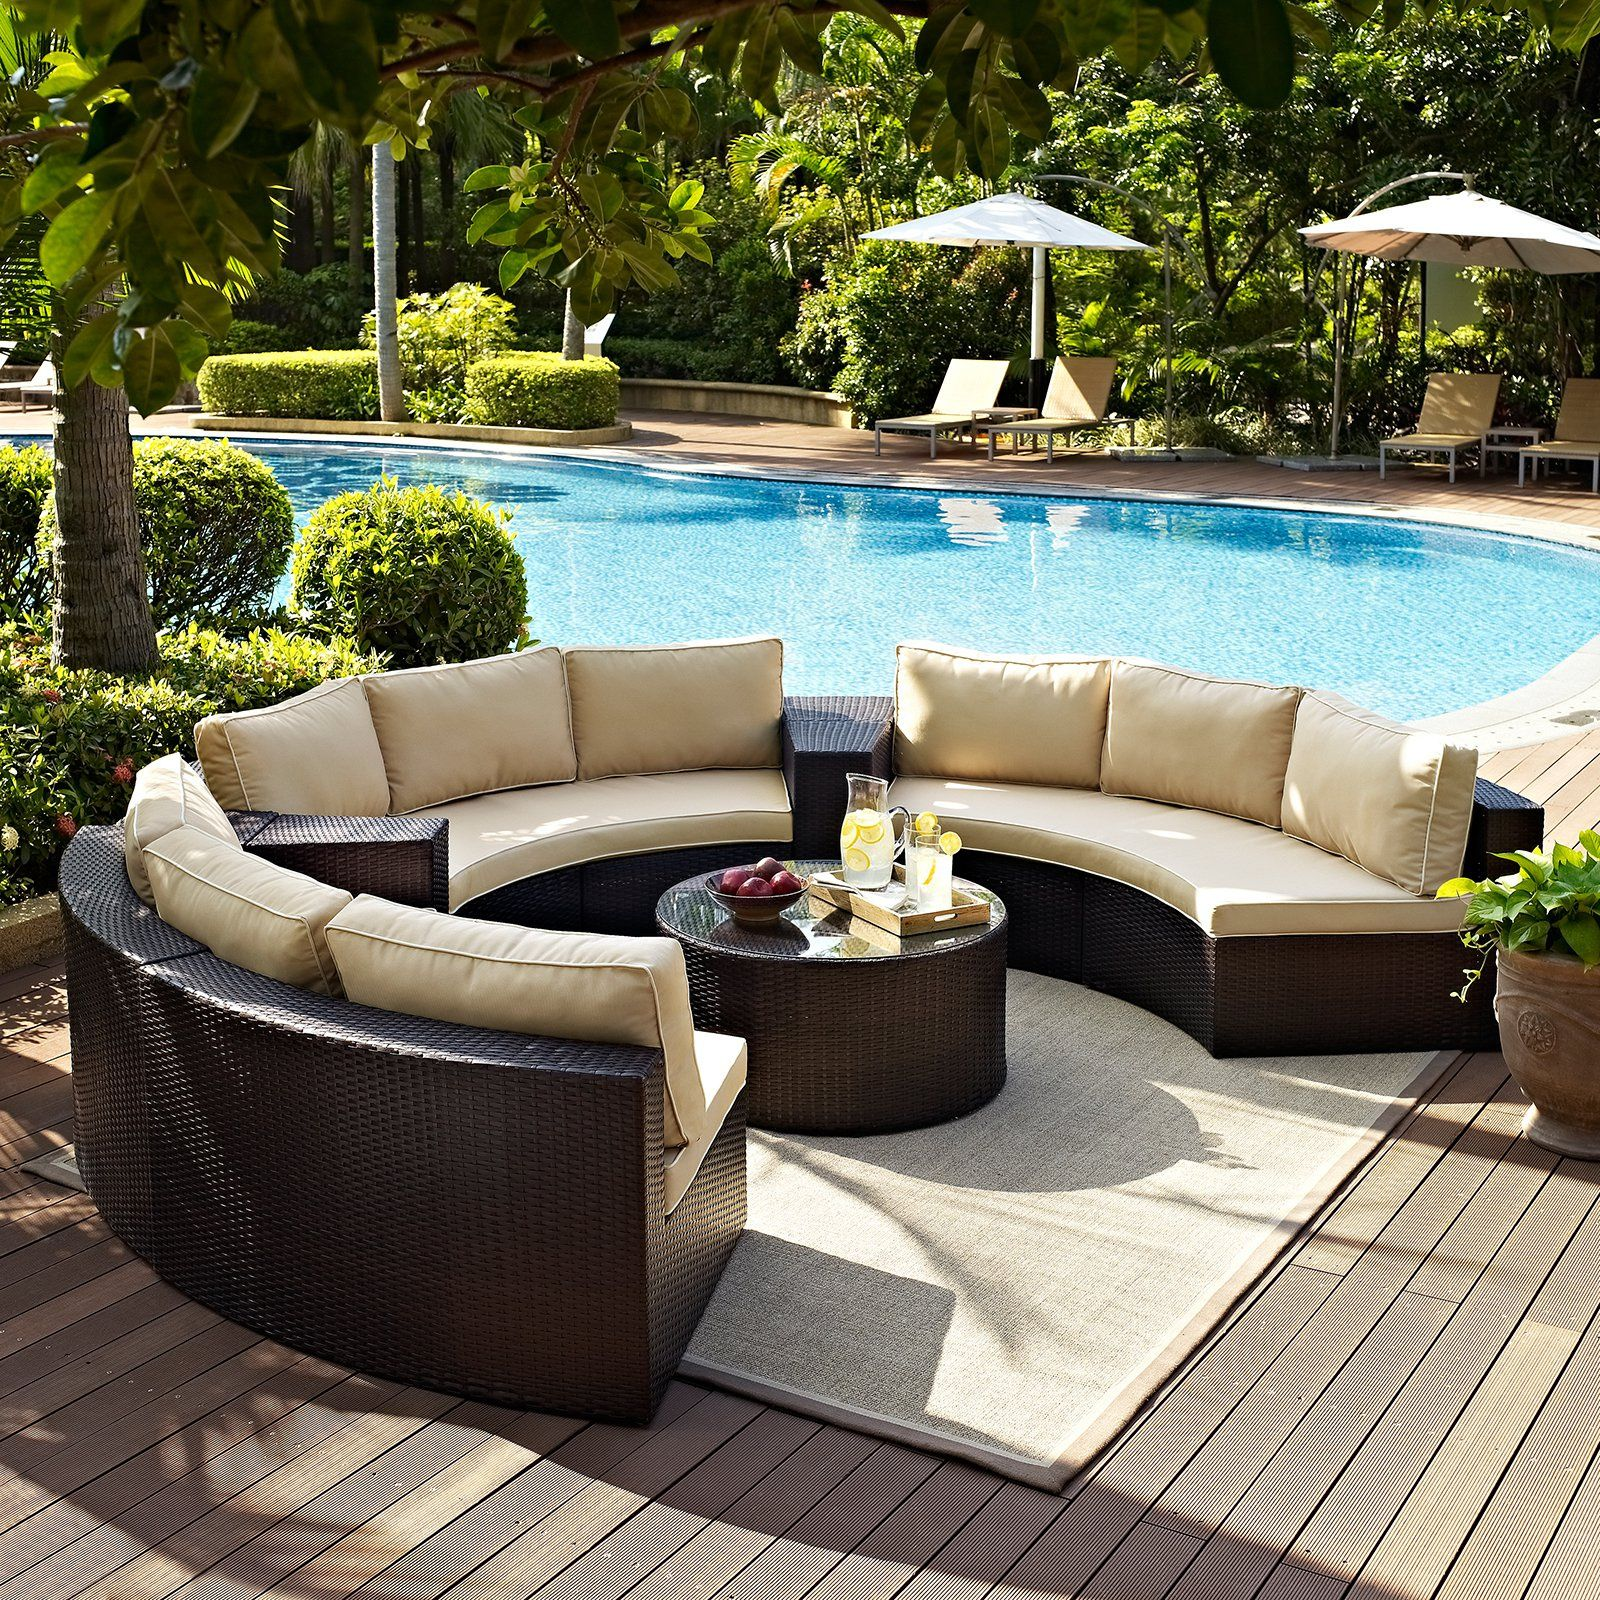 Beau Outdoor Furniture Bradenton Fl   Cool Rustic Furniture Check More At  Http://cacophonouscreations